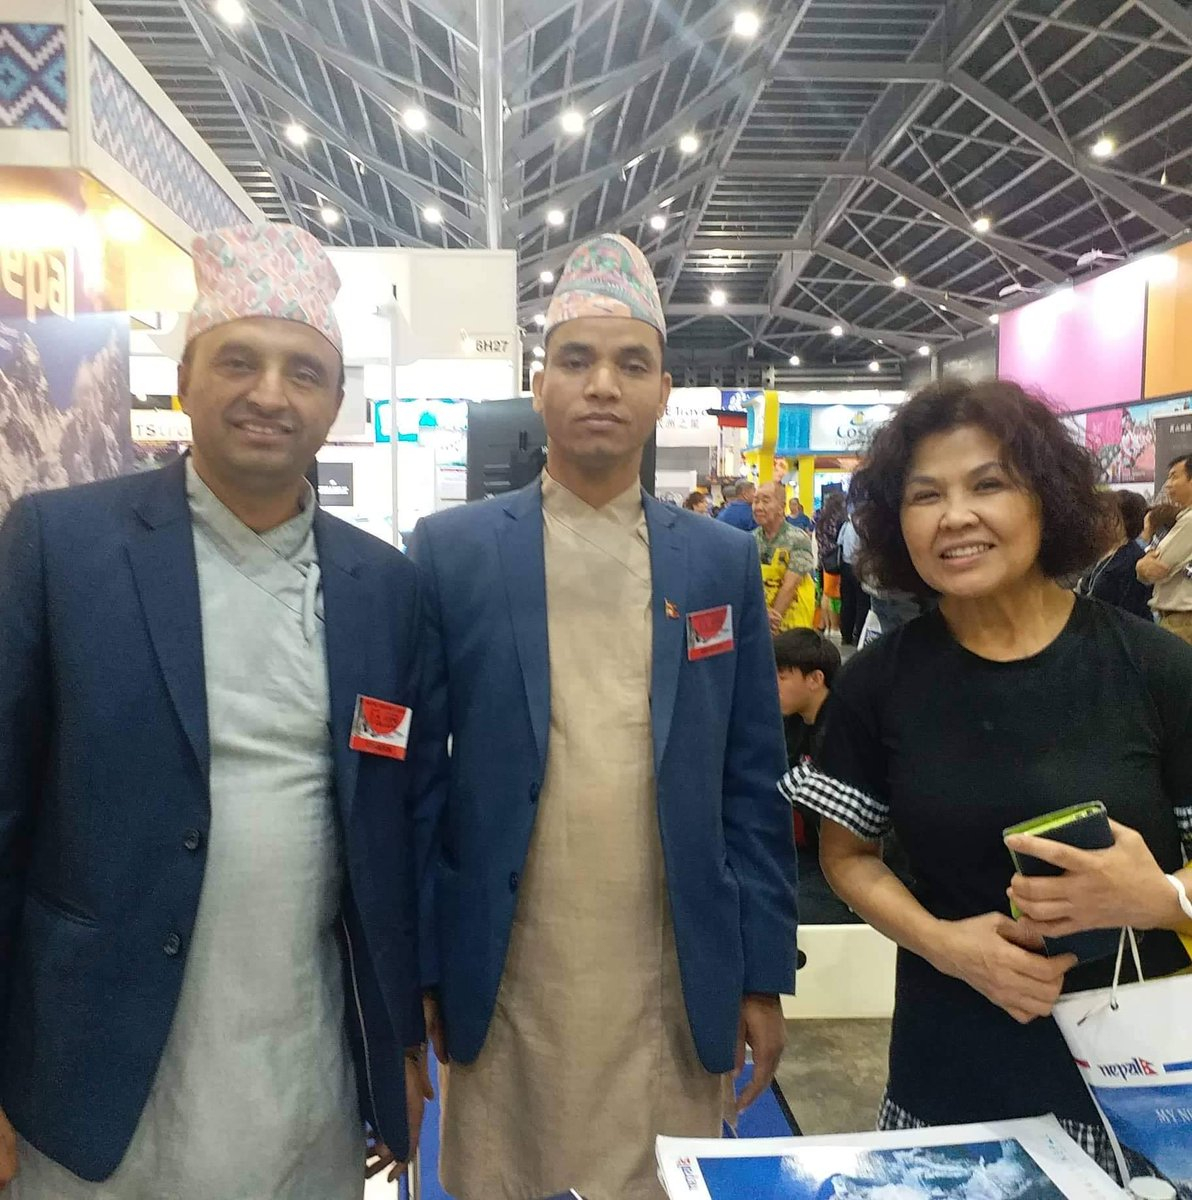 NATAS Holidays 2019 in Singapore formally began with enthusiastic participation from the trade and general public. The fair being led by Nepal Tourism Board is participated by four tour companies from the private sector tourism industry of Nepal. #visitnepal2020 #promotenepal